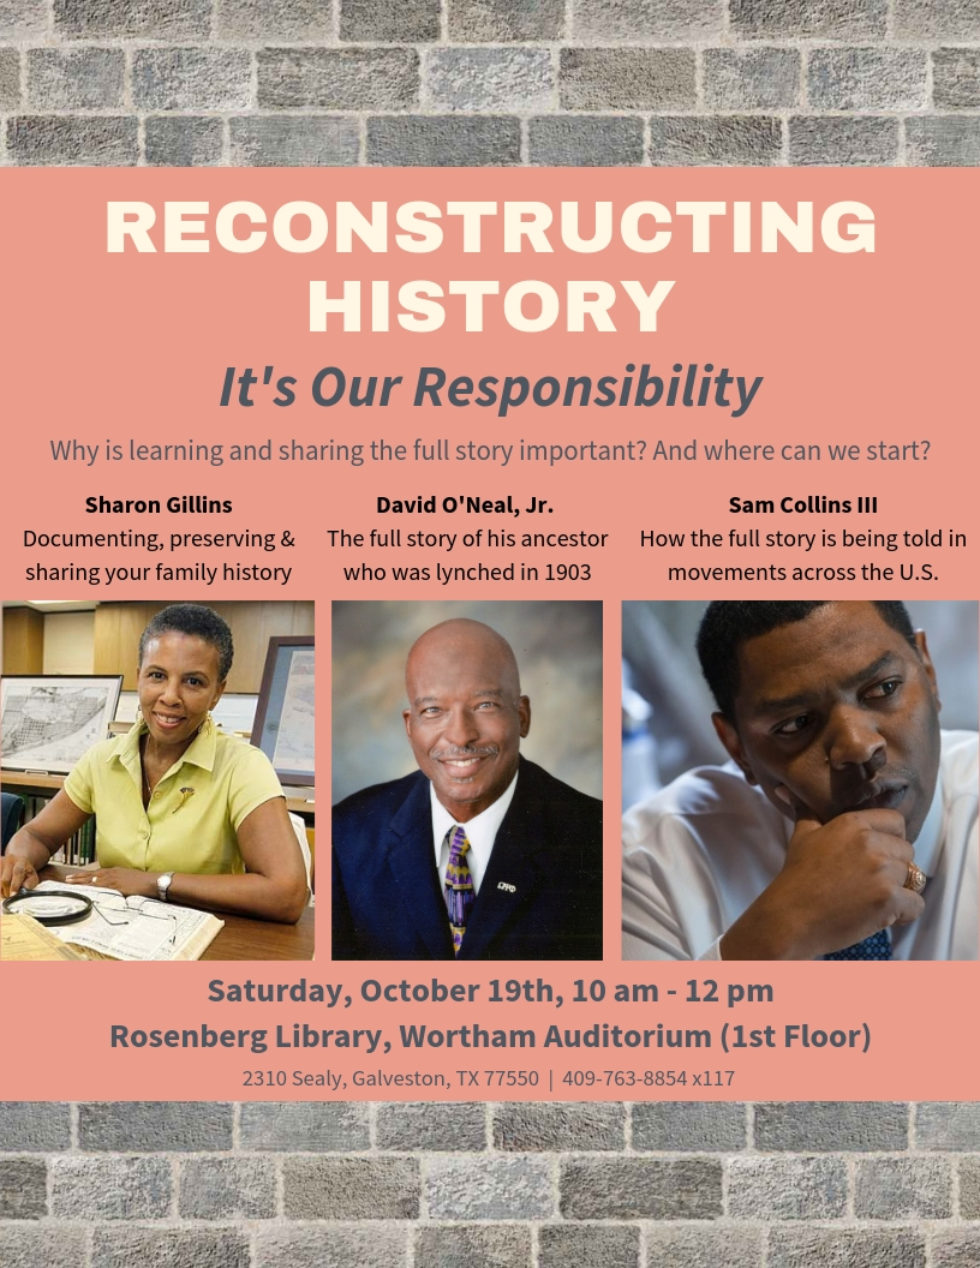 Reconstructing History Panel Discussion, October 19th